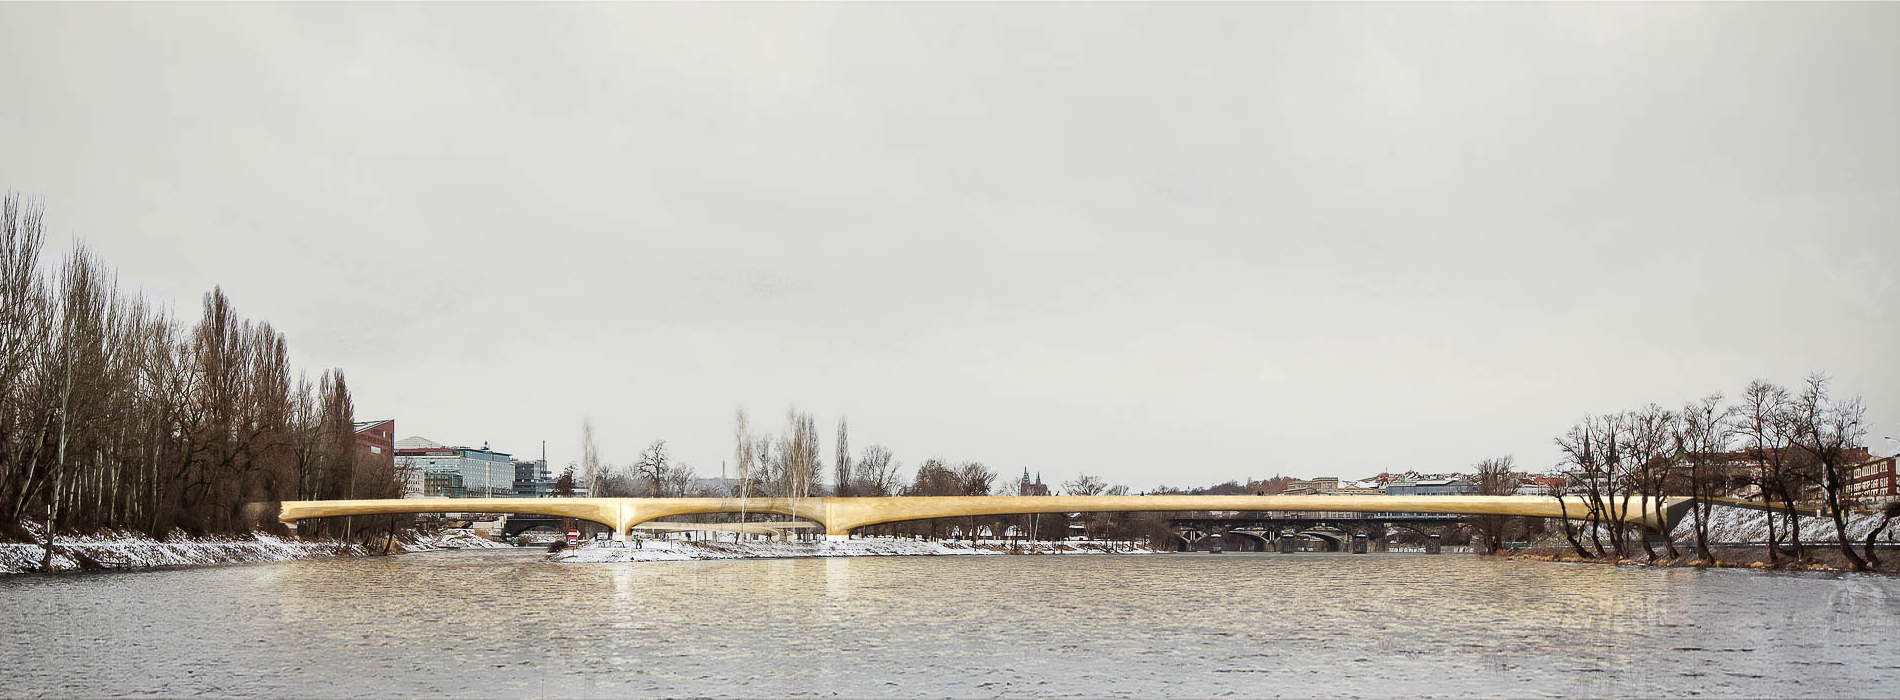 Holešovice – Karlín Footbridge